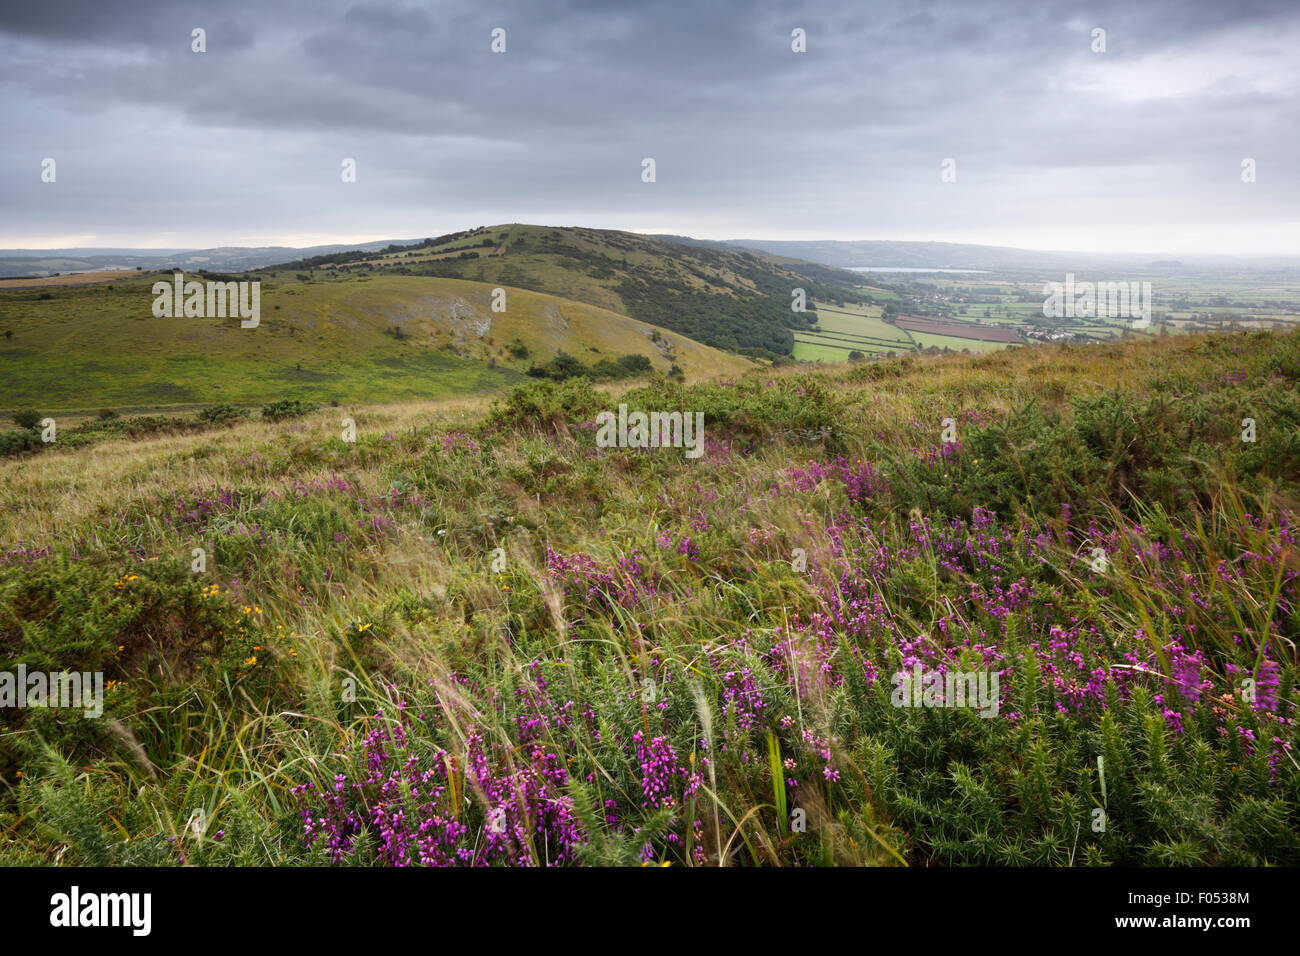 View from Crook Peak. The Mendip Hills. Somerset. UK. - Stock Image